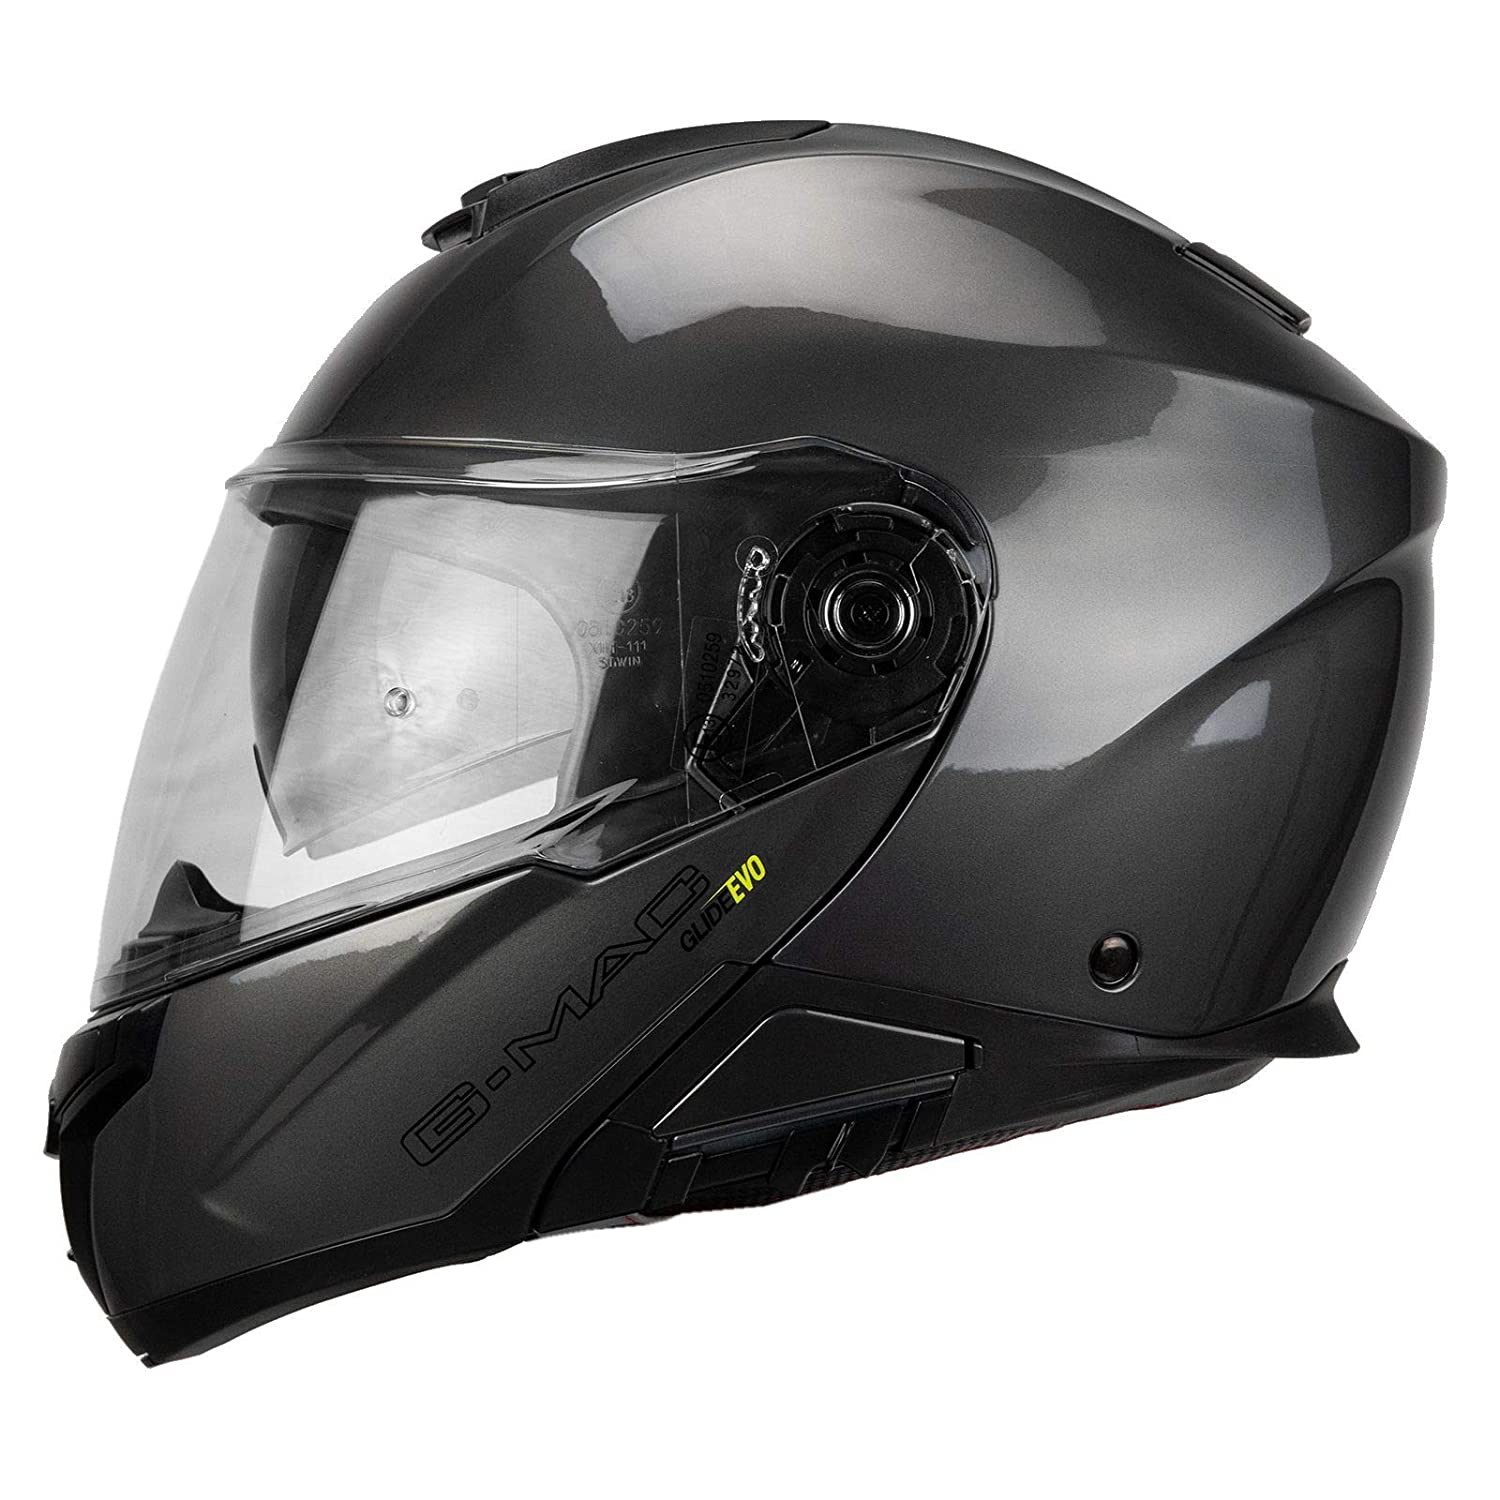 G-Mac Glide Evo color gris Casco de moto con tapa frontal